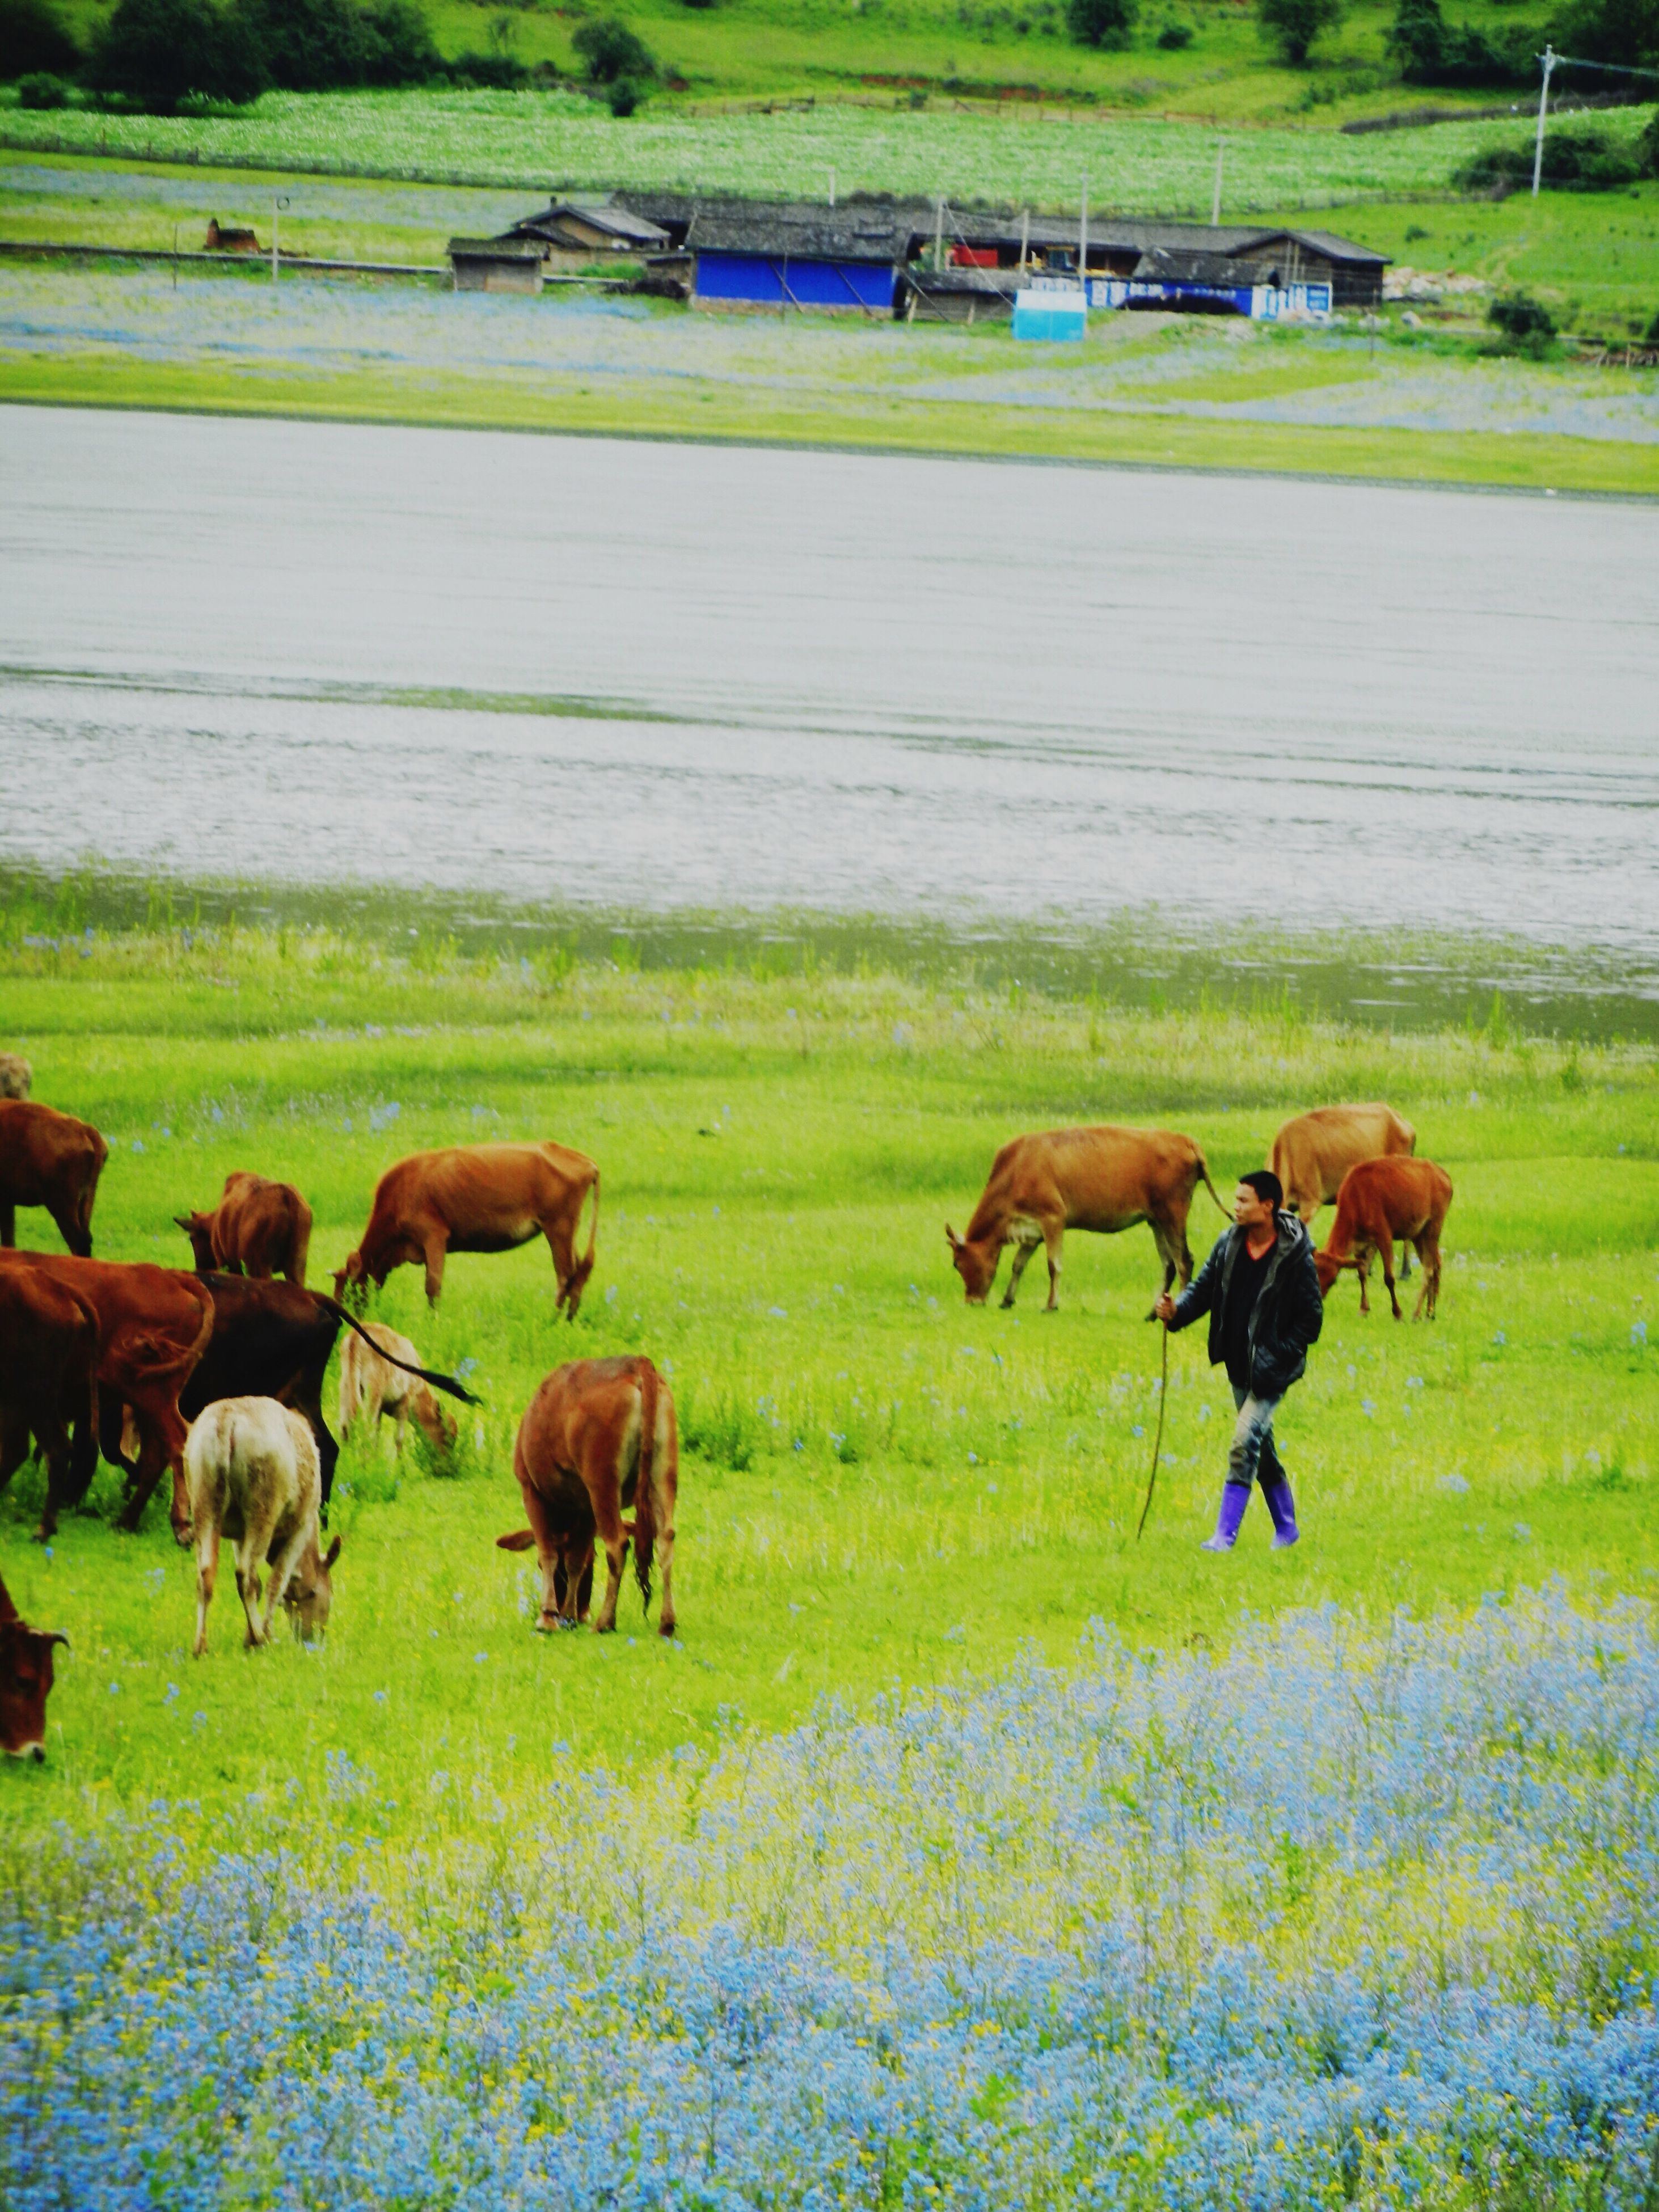 grass, animal themes, field, domestic animals, livestock, grassy, mammal, landscape, horse, medium group of animals, green color, grazing, nature, rural scene, cow, day, pasture, outdoors, farm